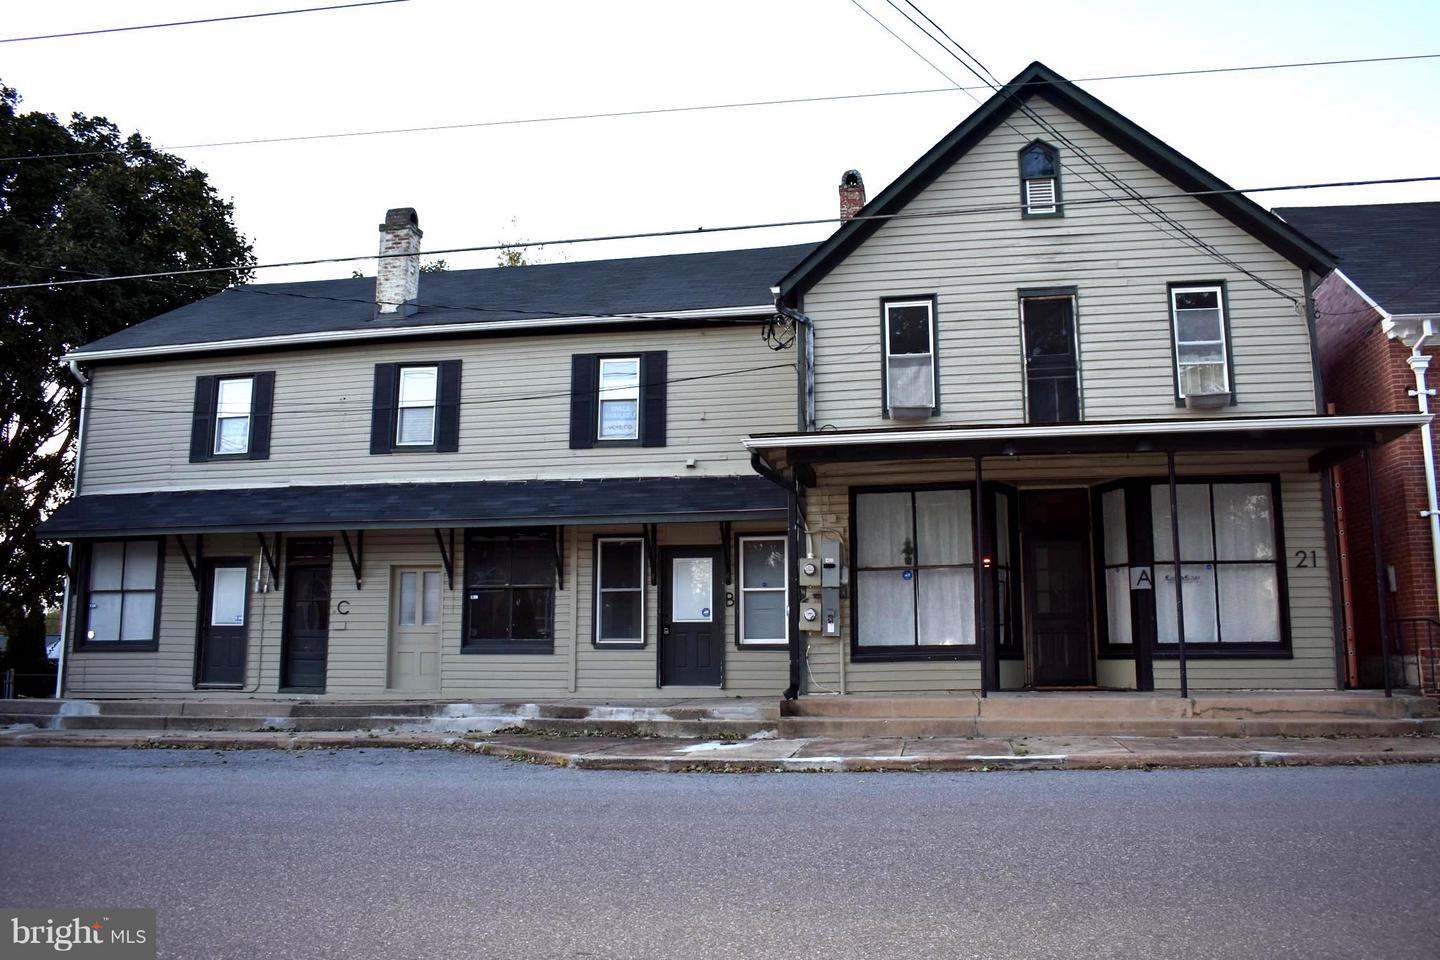 Other Residential for Rent at 21 Pennsylvania Ave W #b Walkersville, Maryland 21793 United States